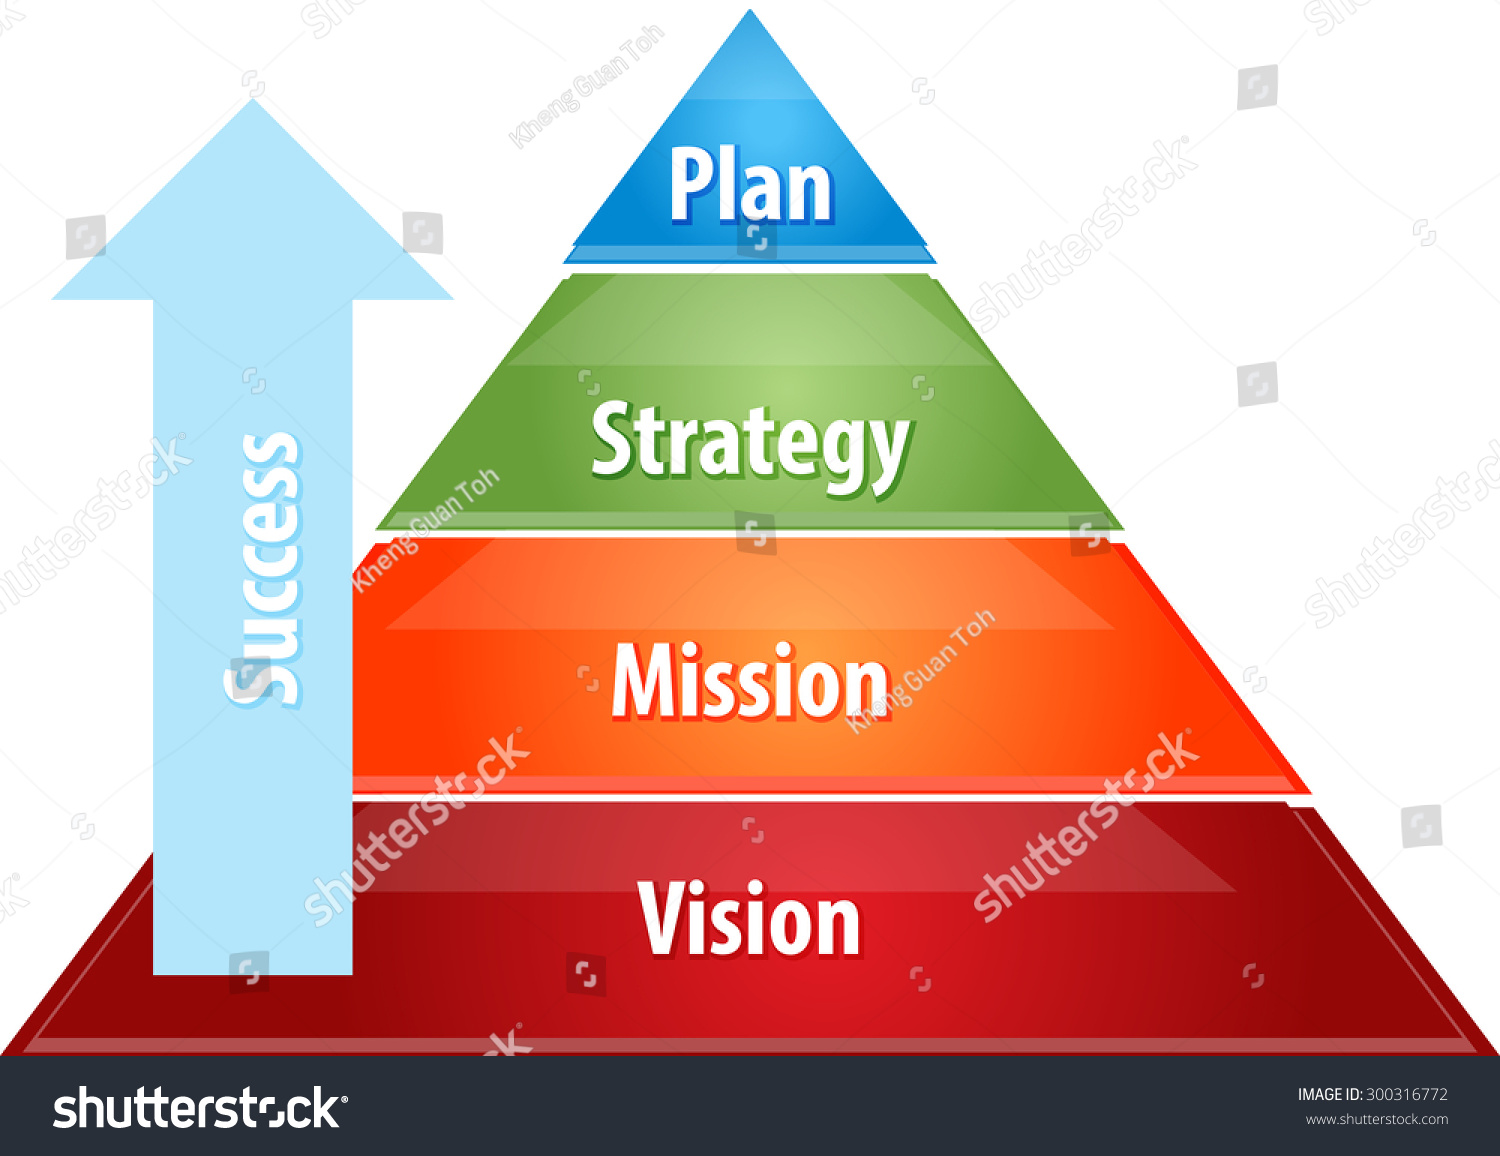 Strategy pyramid business plan essays about choices in life